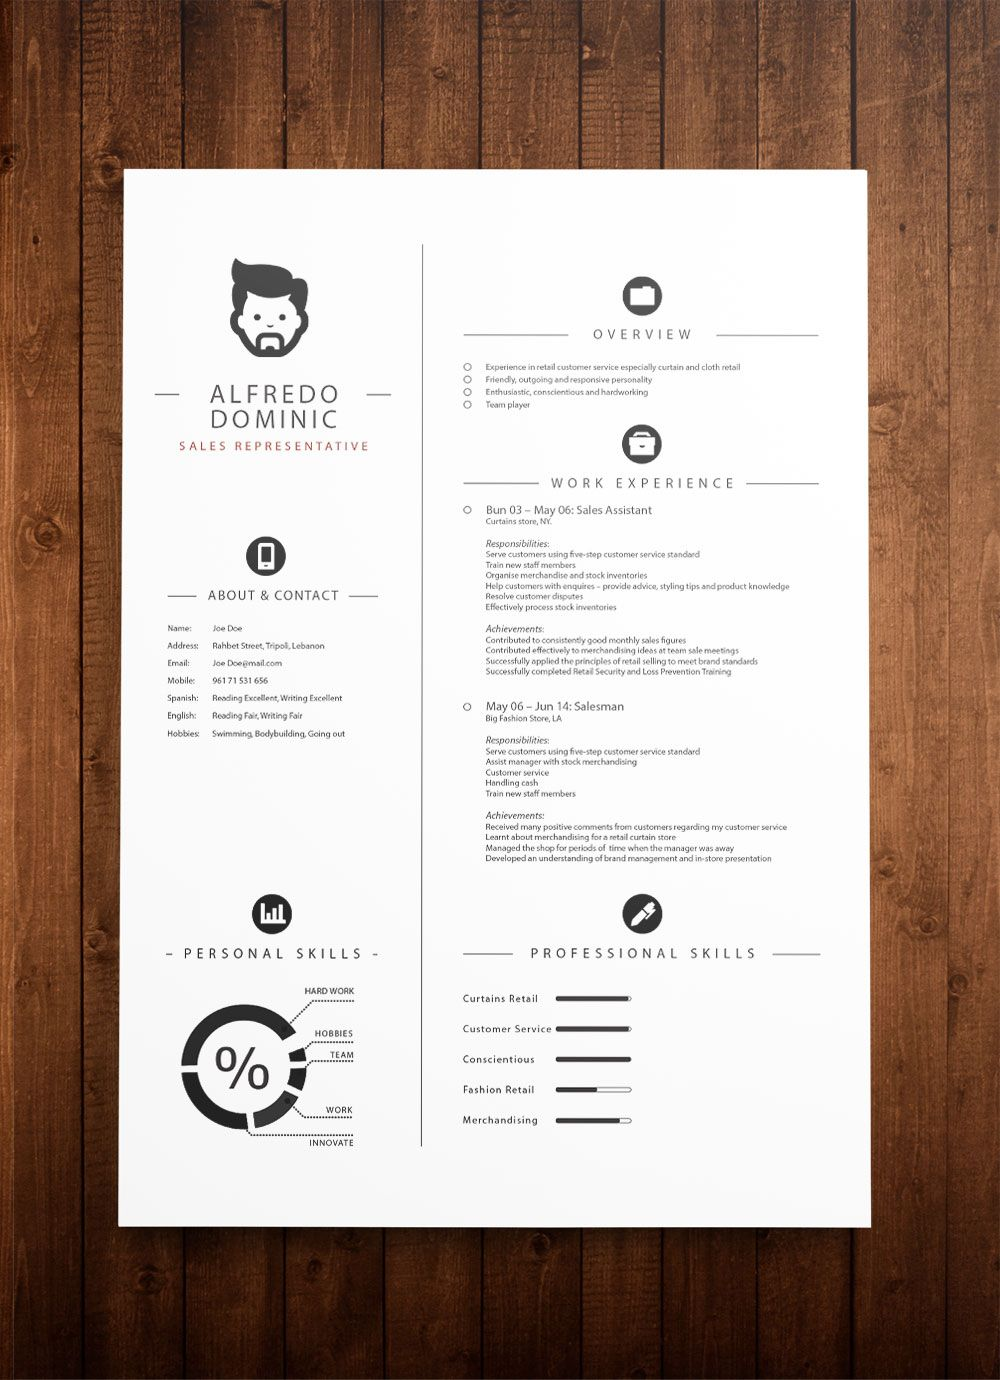 plantilla cv gratis. If you like UX, design, or design thinking ...